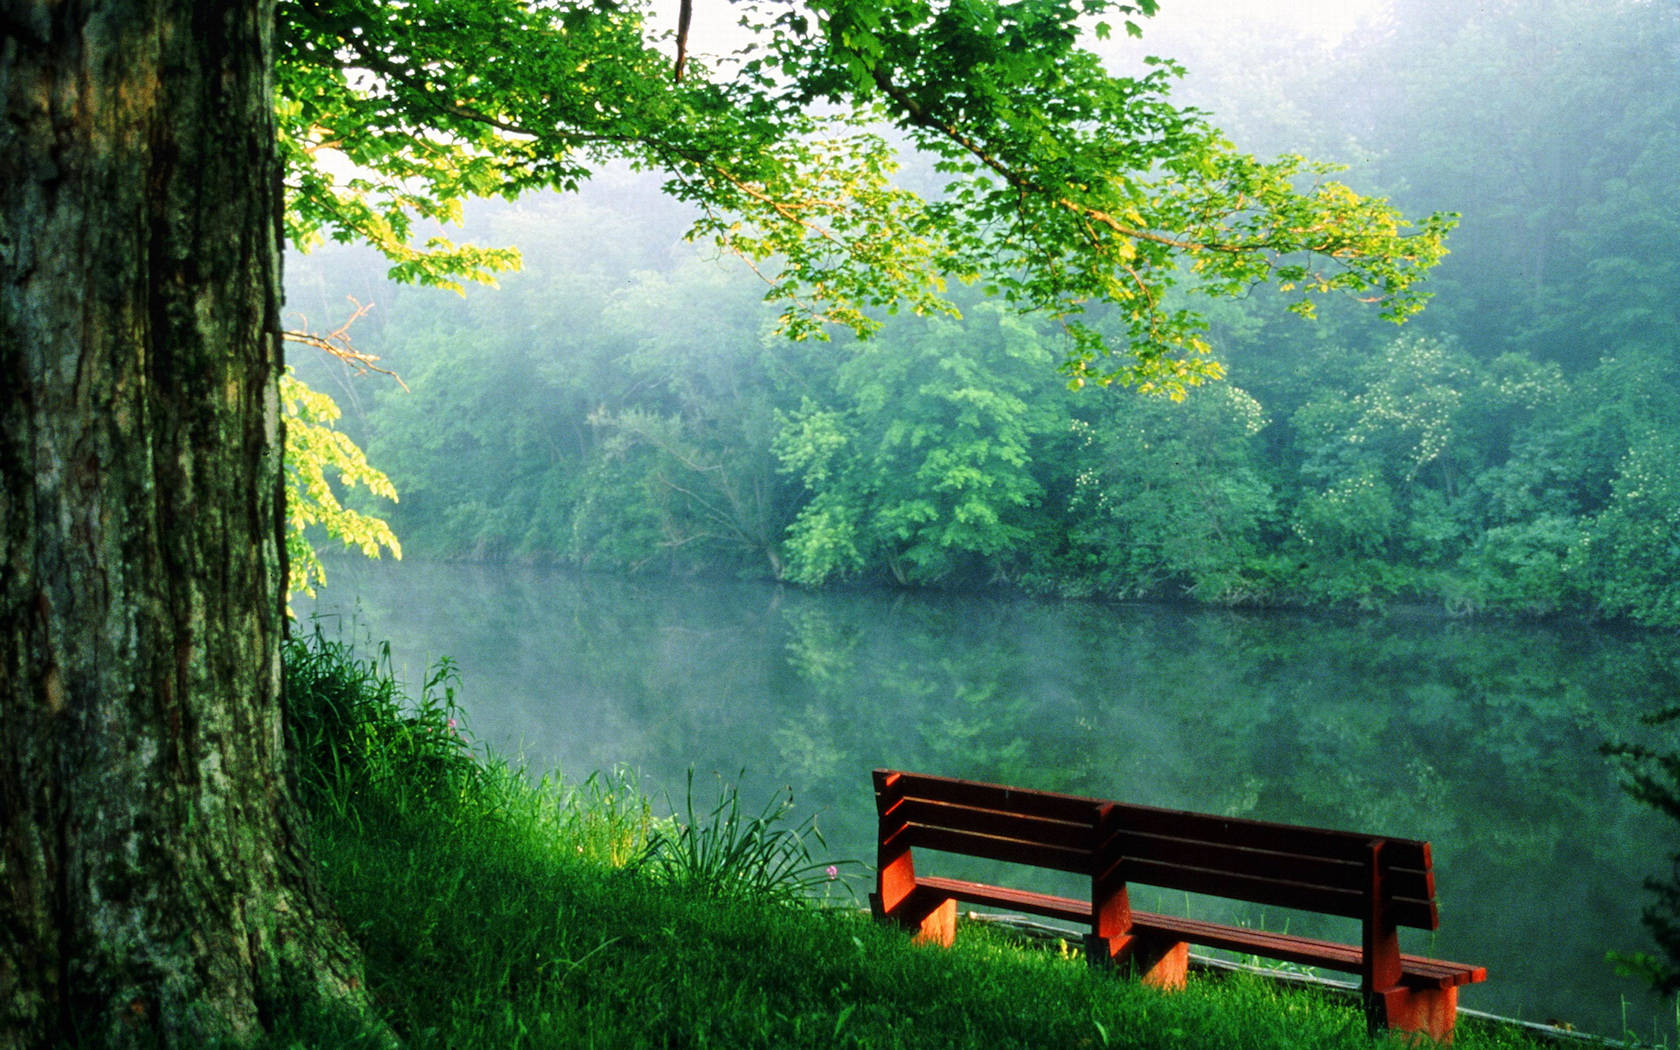 Quiet place near the river wallpapers and images 1680x1050